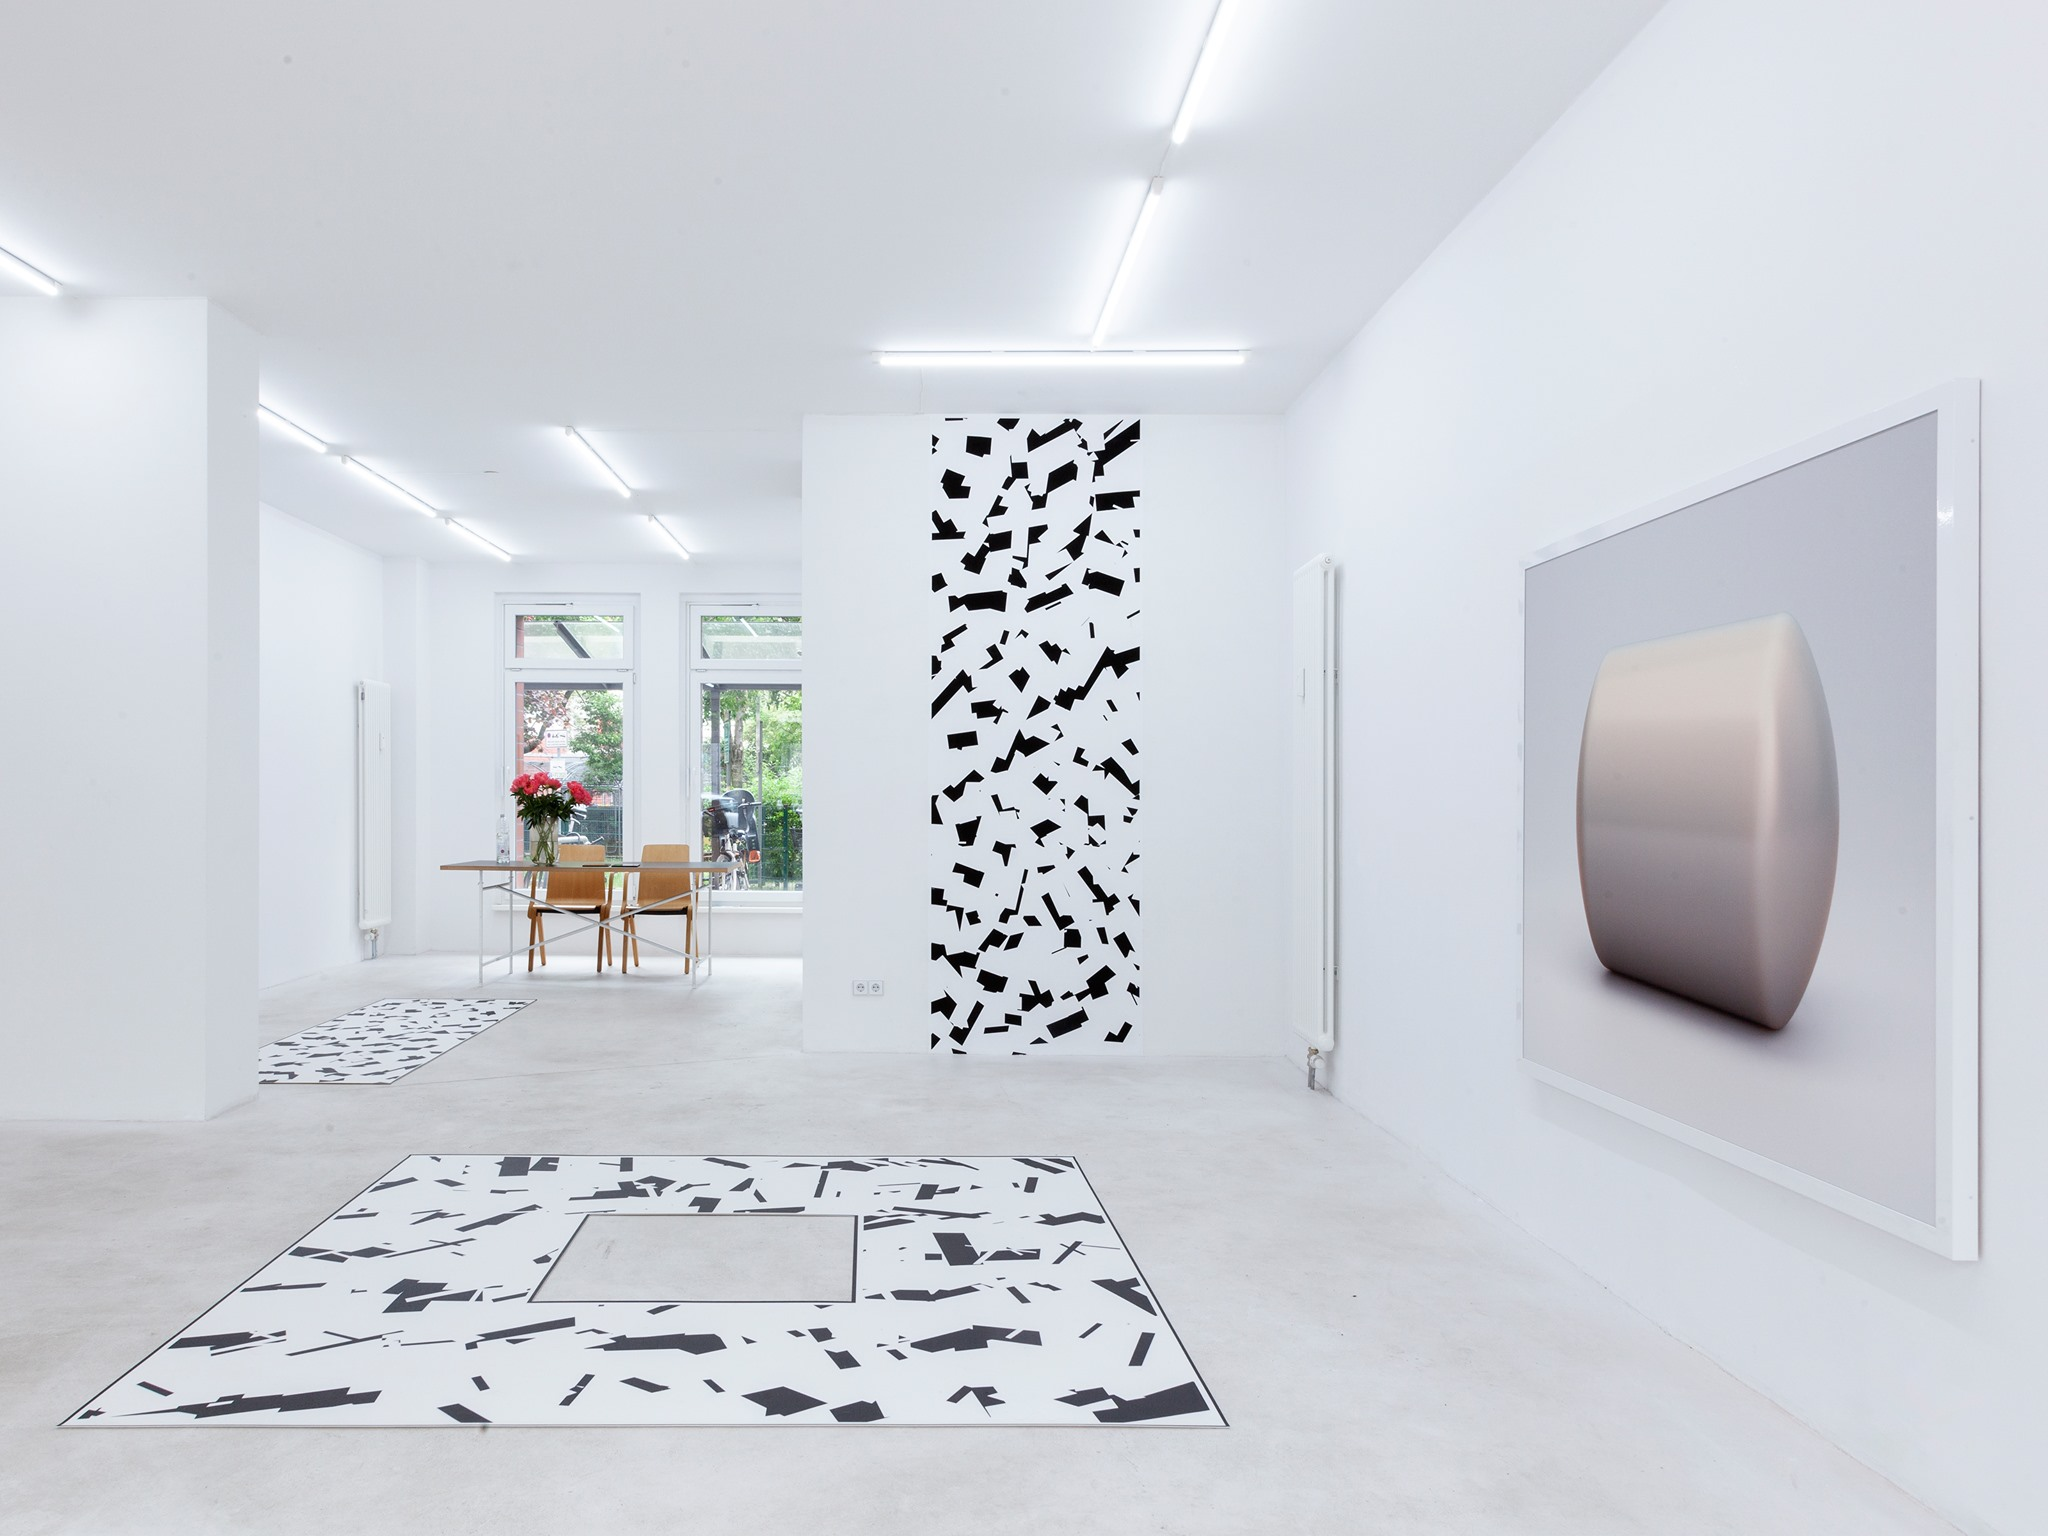 Banz & Bowinkel, Cylinder and Bots, Installation view